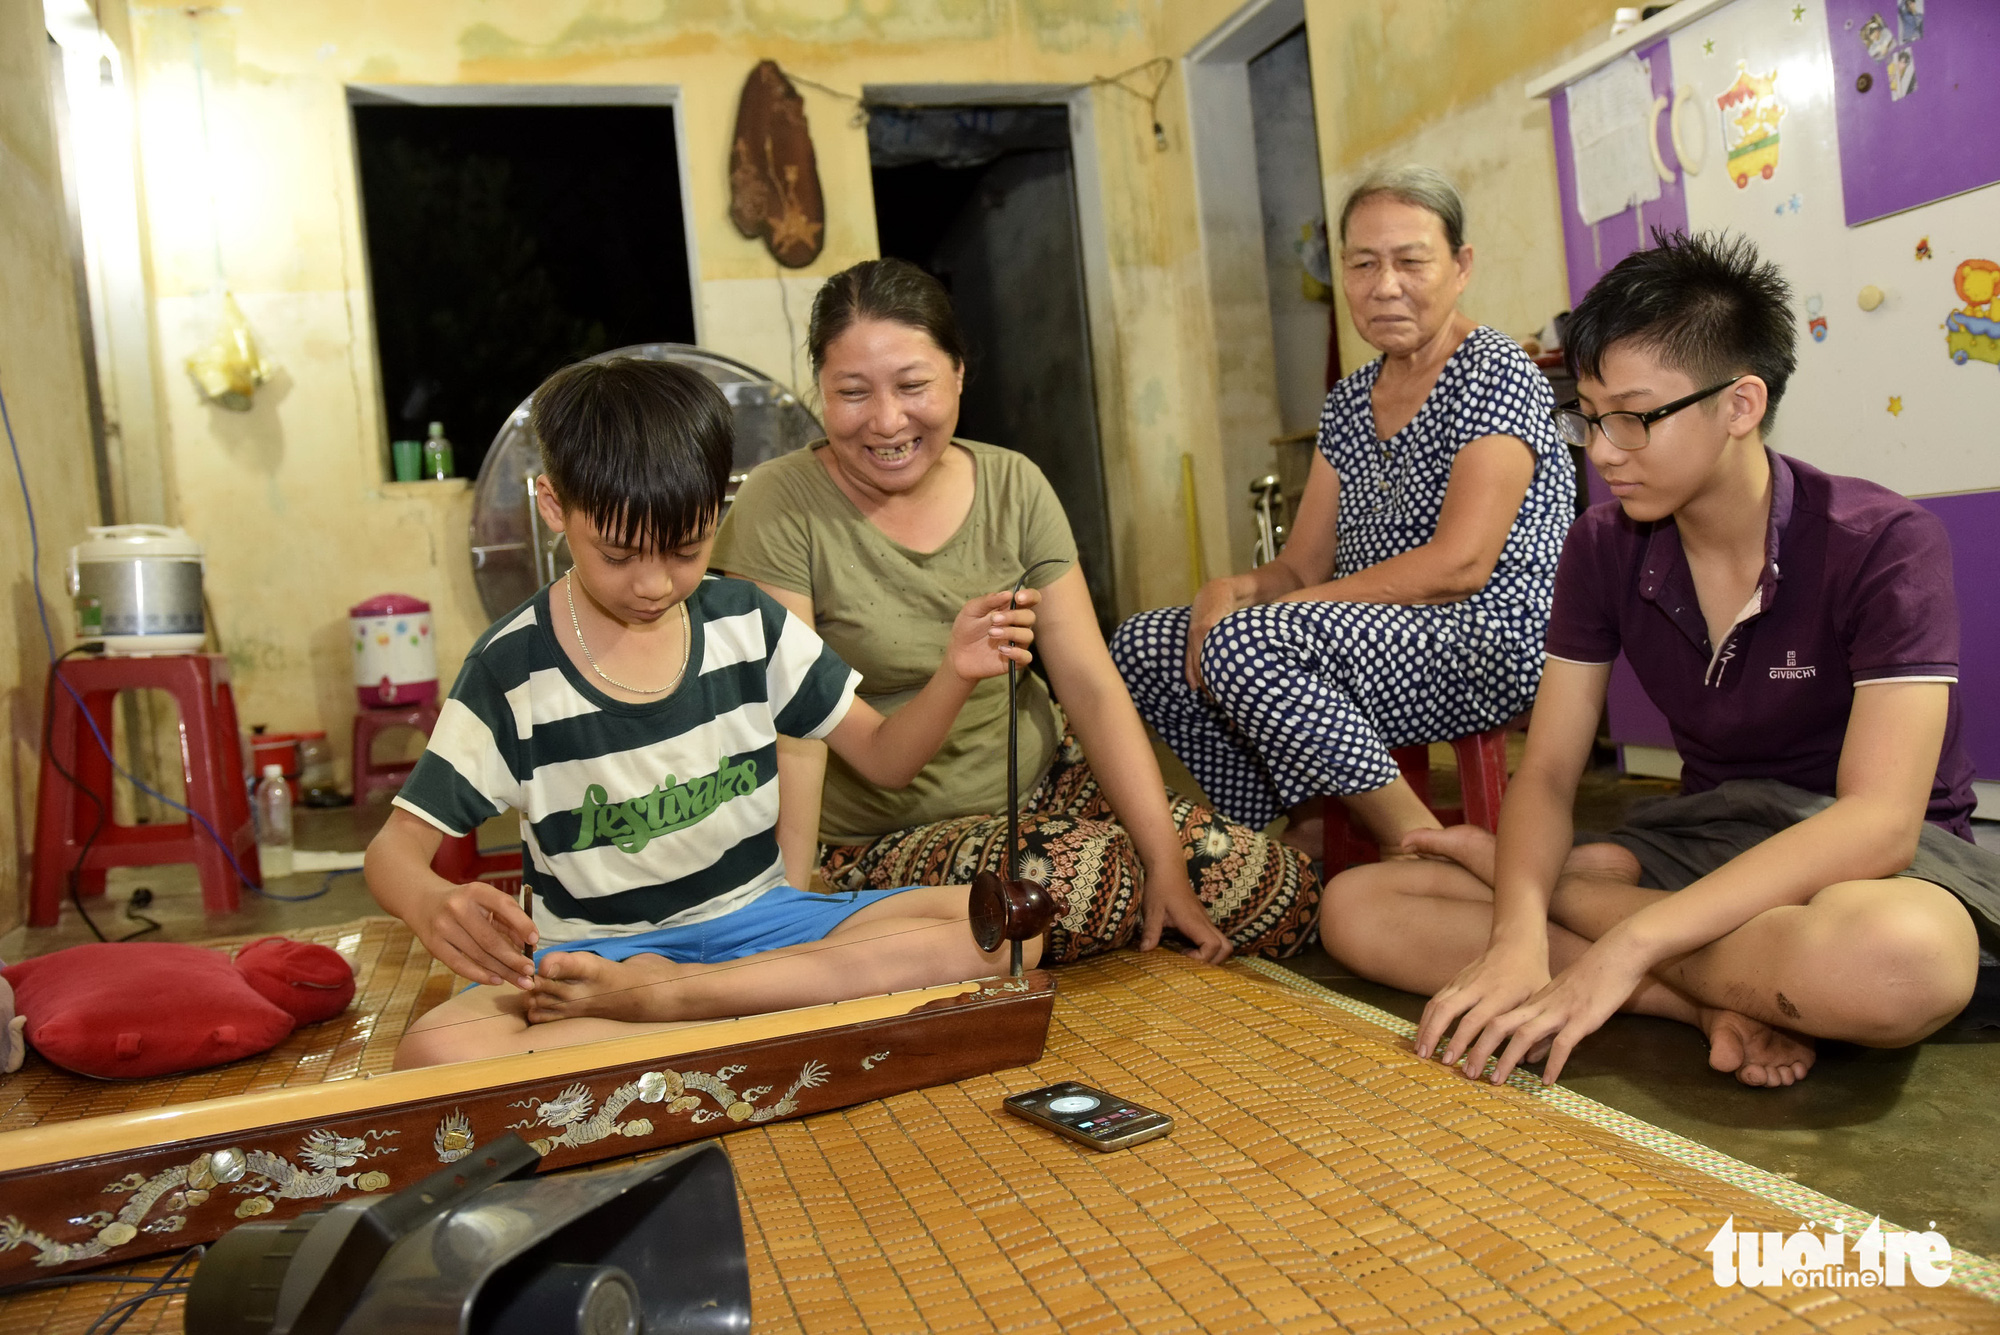 In Vietnam, elderly woman, daughter peddle to support grandson's pursuit of traditional music